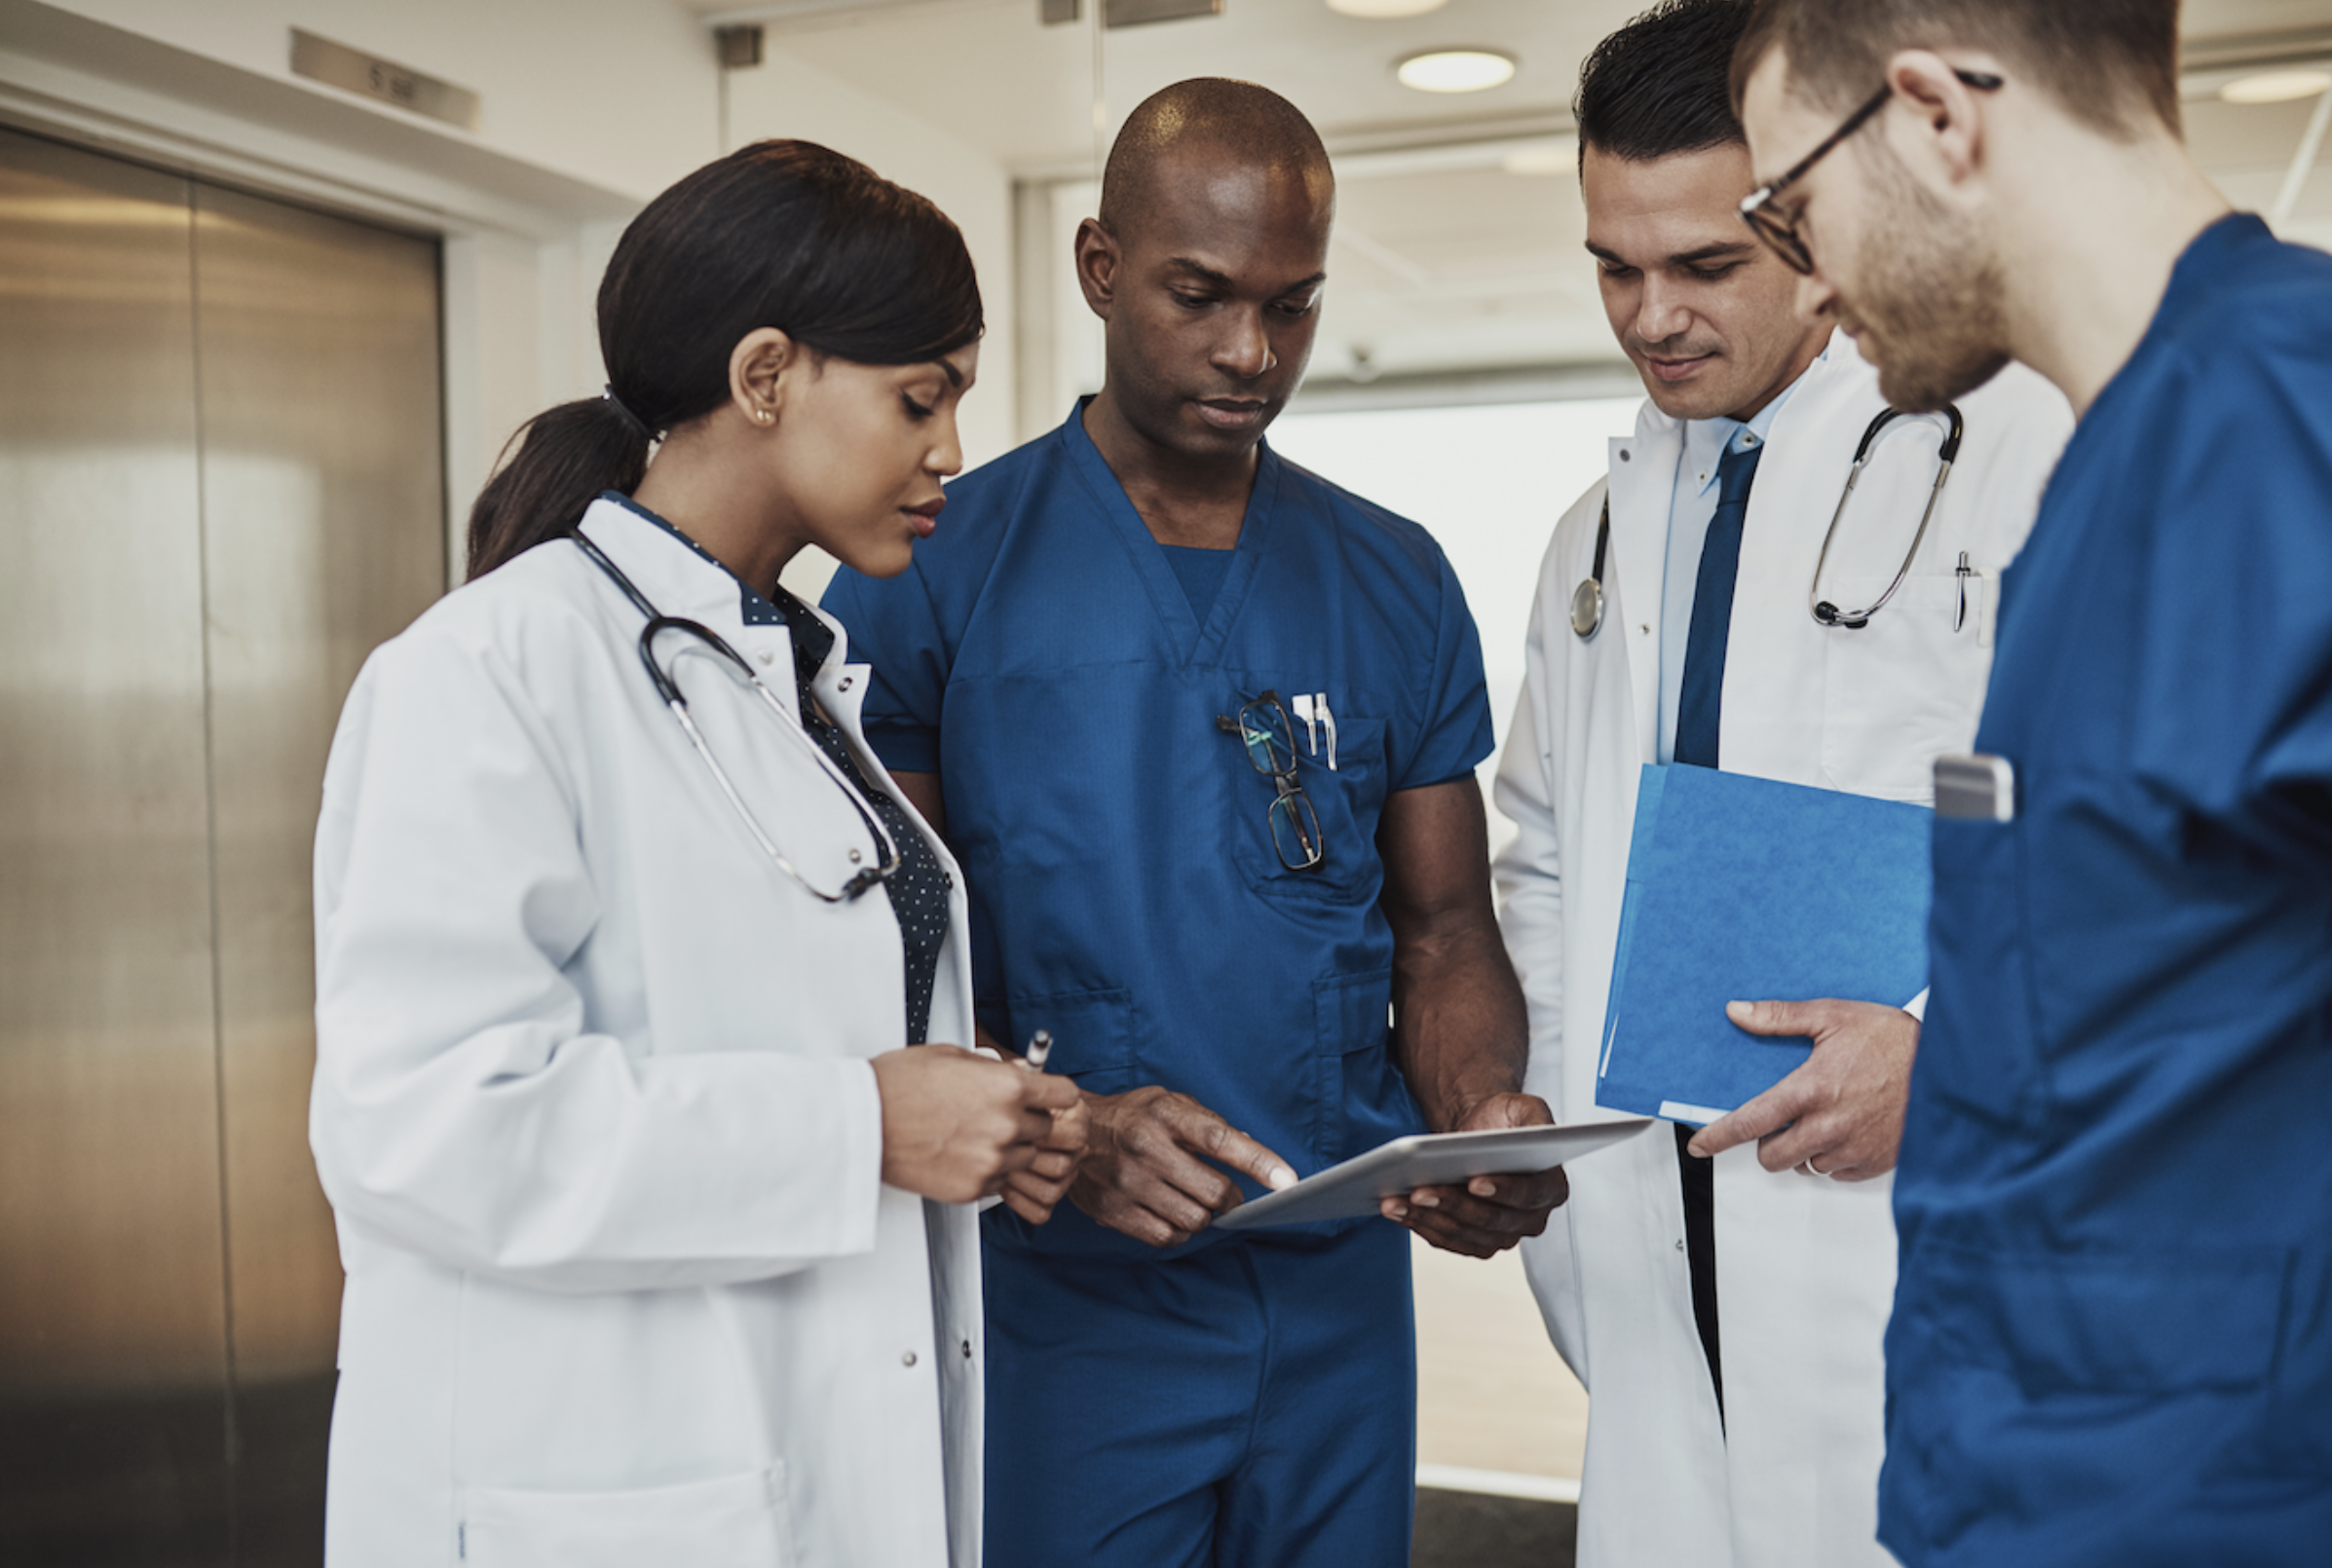 What is Antimicrobial Stewardship and why is it so important?